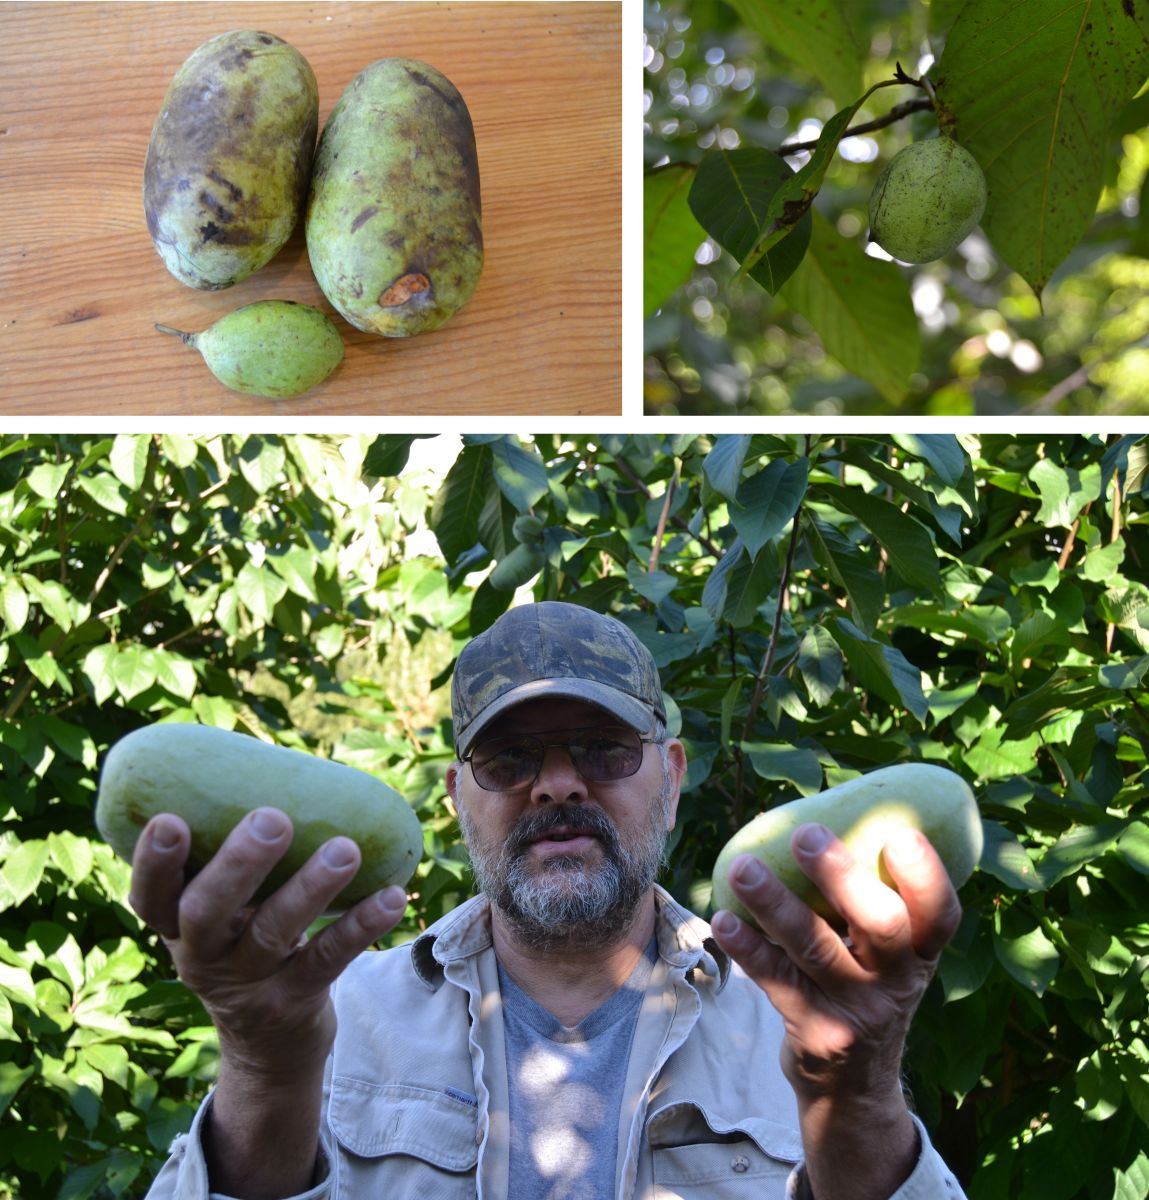 Top right: Wild pawpaws are a lot smaller than their cultivated cousins. Top left: An unripe pawpaw hangs from a tree. The traditional harvest season in Pennsylvania occurs during September. Bottom:  Marc Boone, pawpaw grower in Michigan. Photos: Andrew Moore